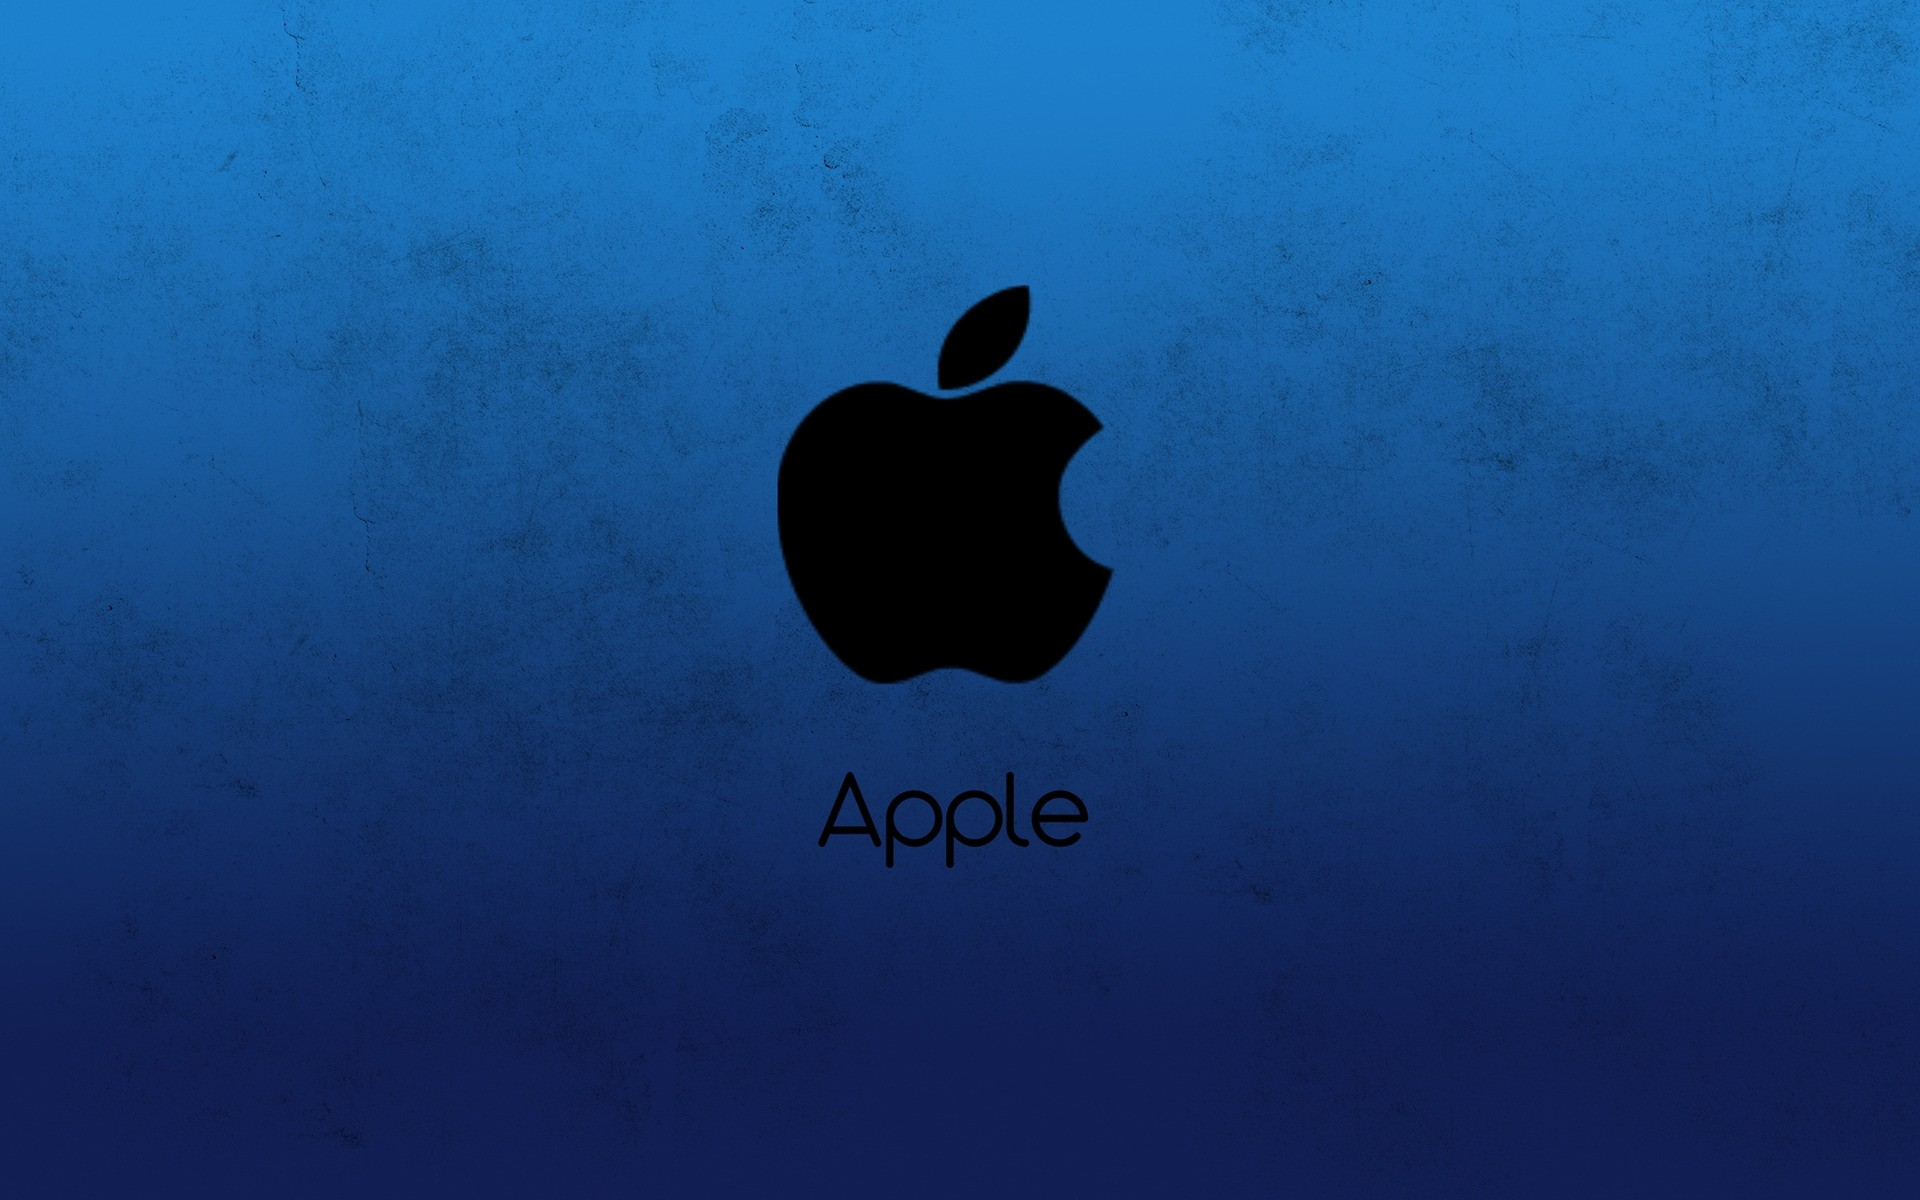 Apple Blue Desktop Wallpapers For Free